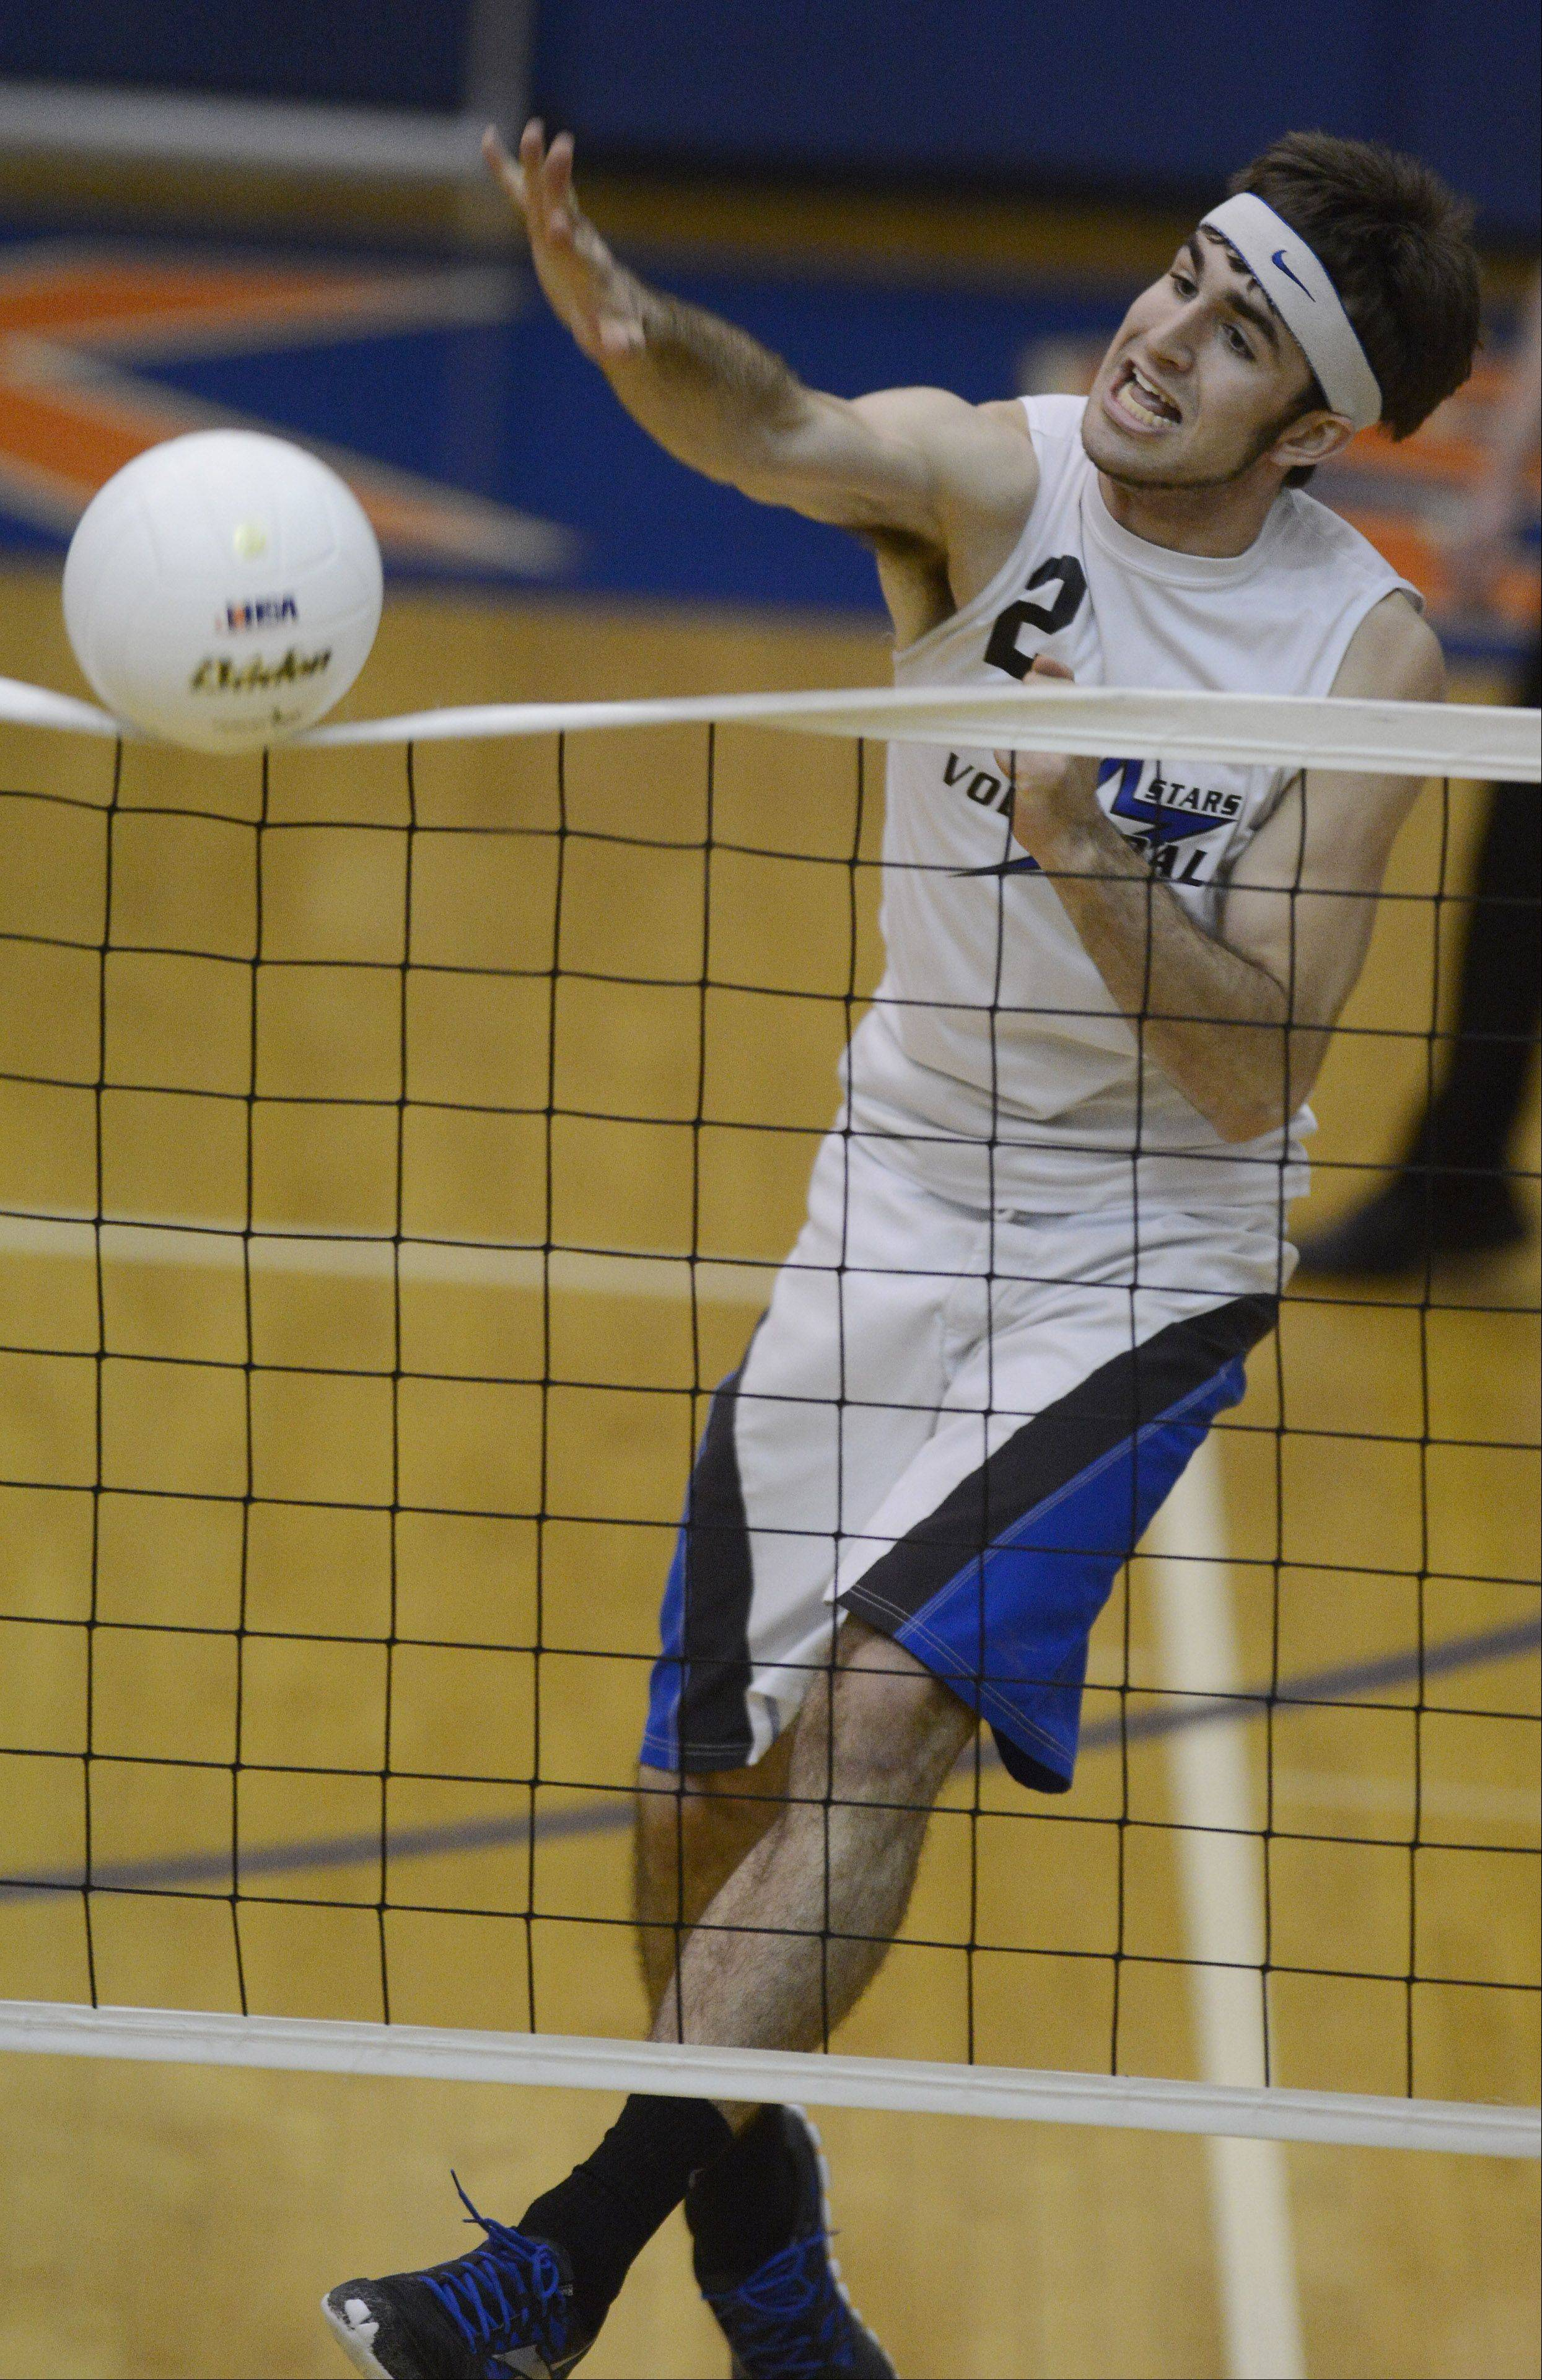 St. Charles North's Jonathan Orech gets a kill during Saturday's volleyball match against Glenbrook South at Hoffman Estates High School.